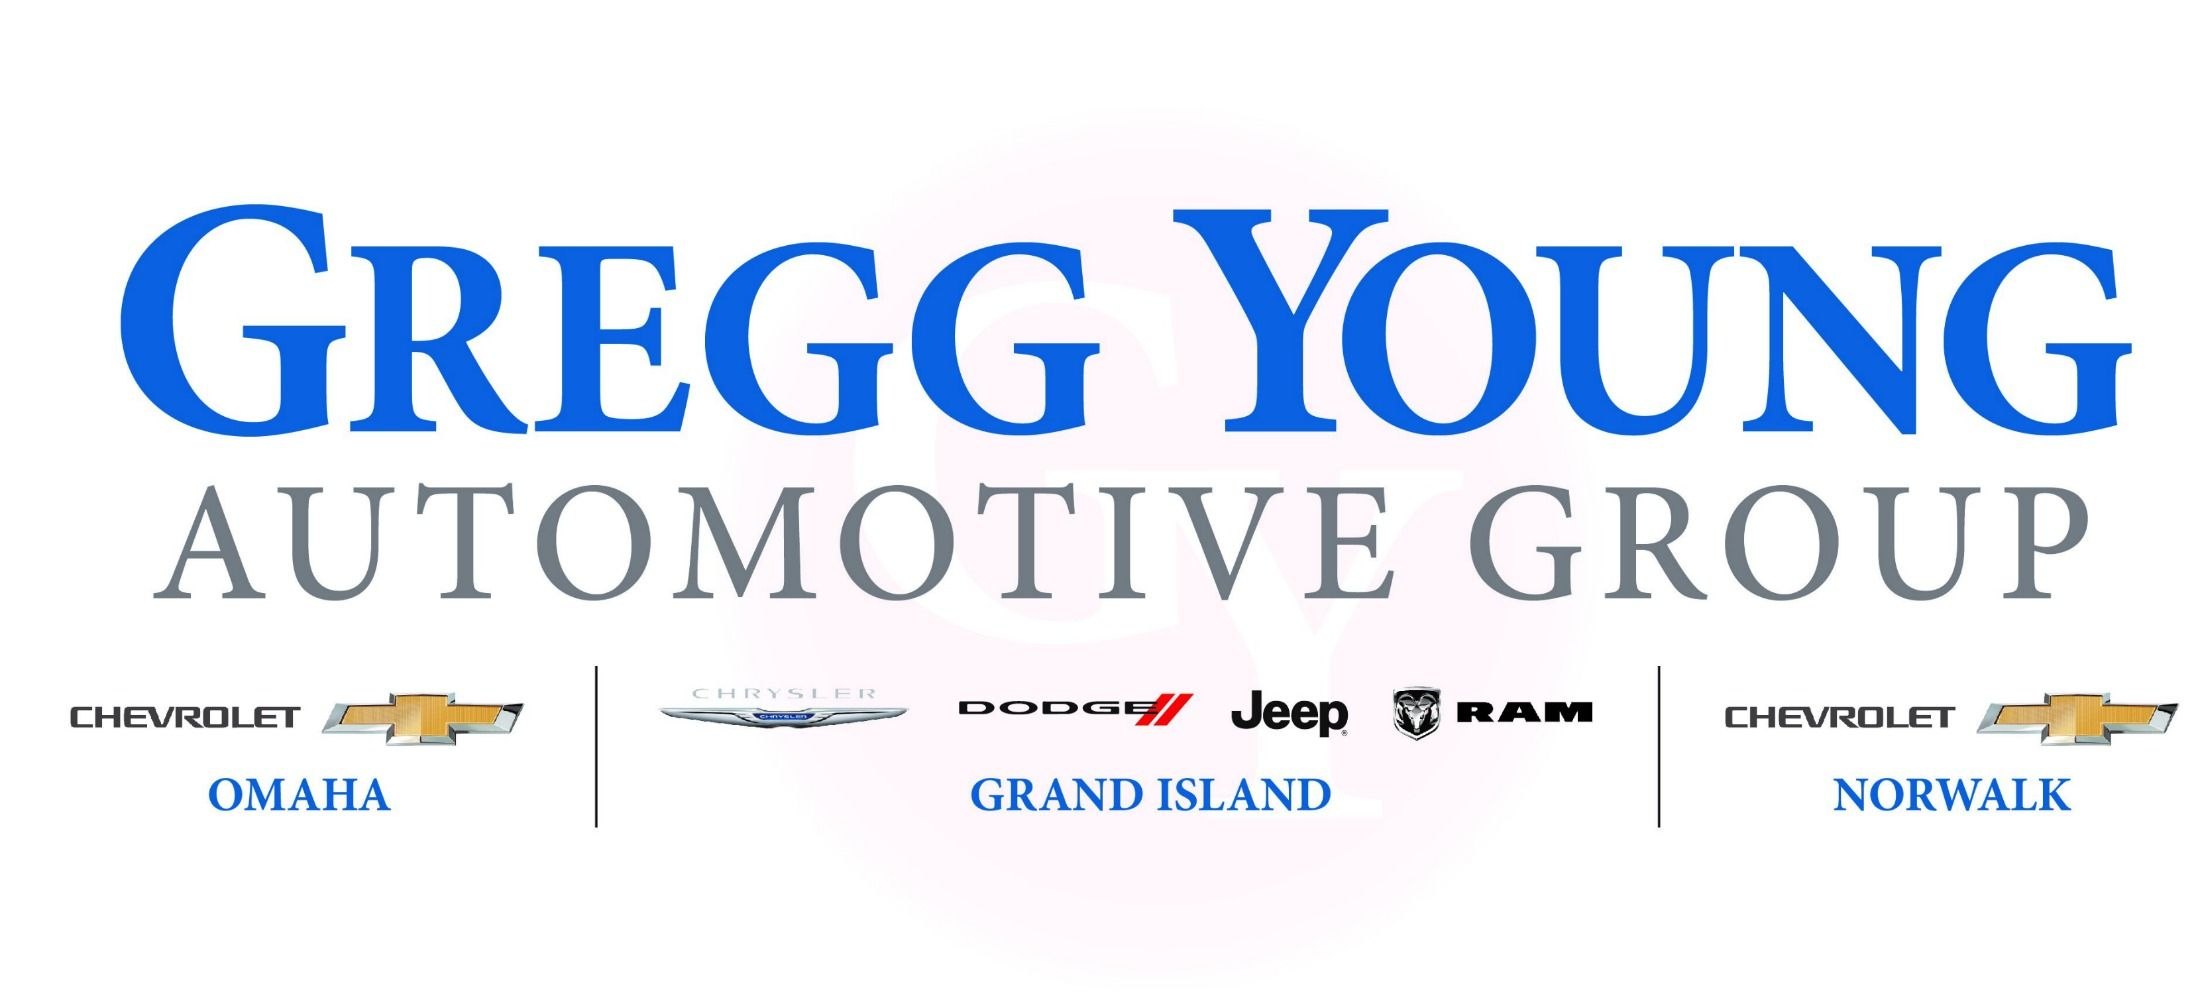 Gregg Young Automotive Group